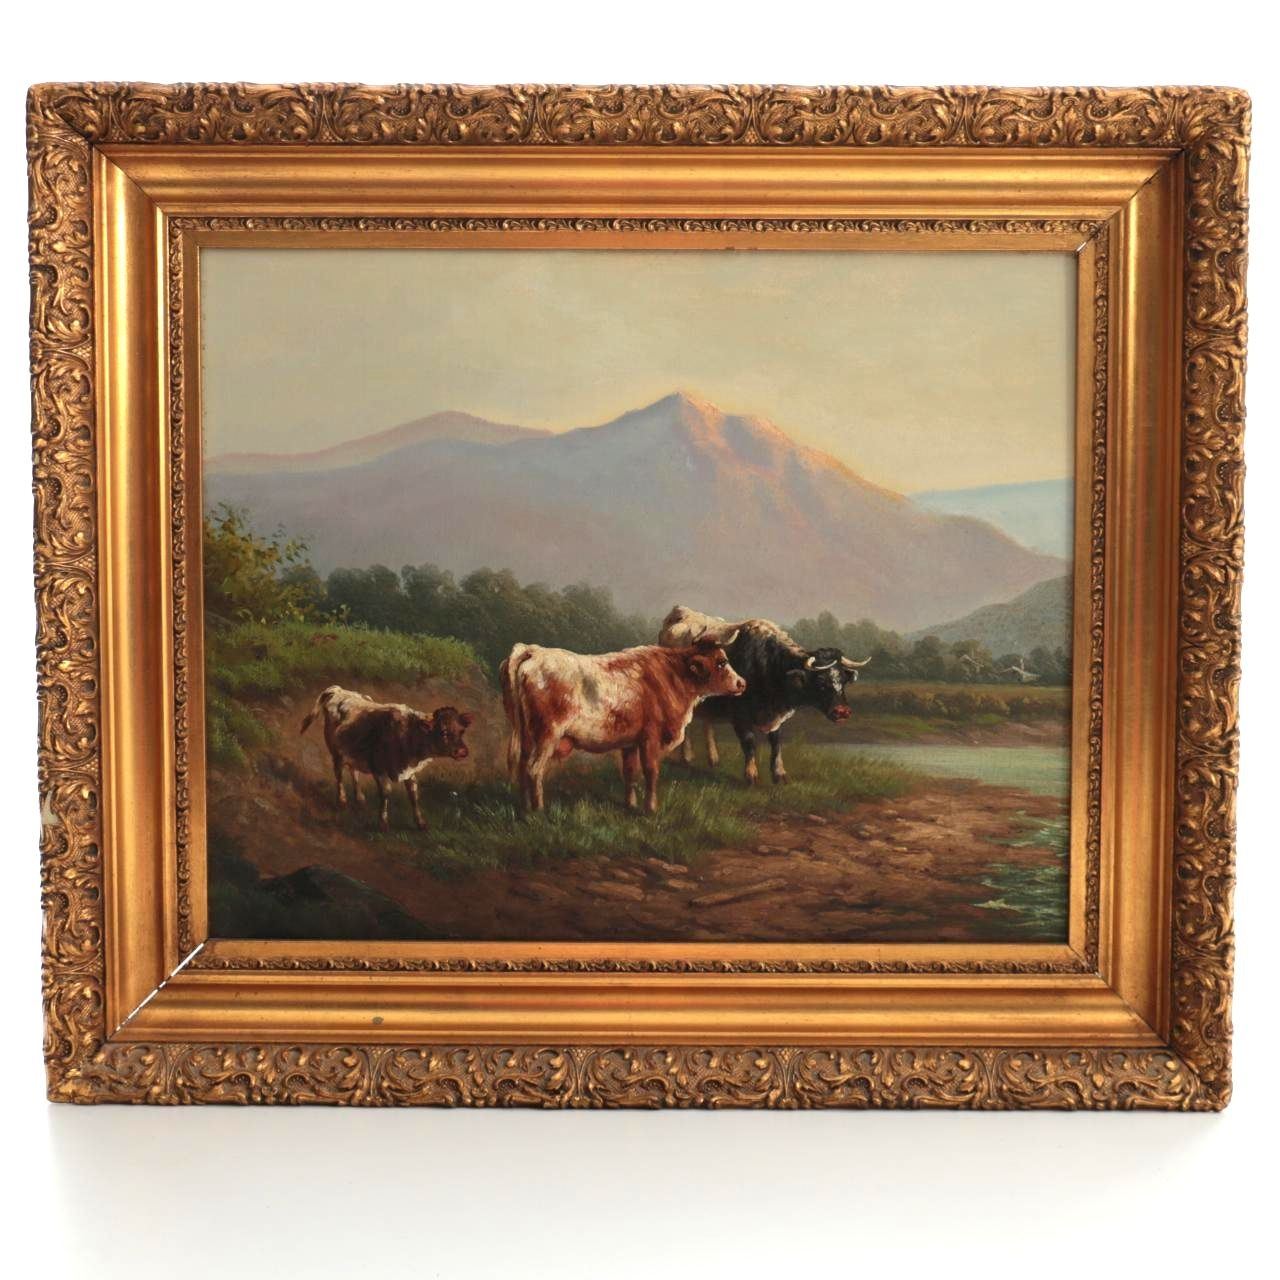 Original Oil Painting on Board of Cows